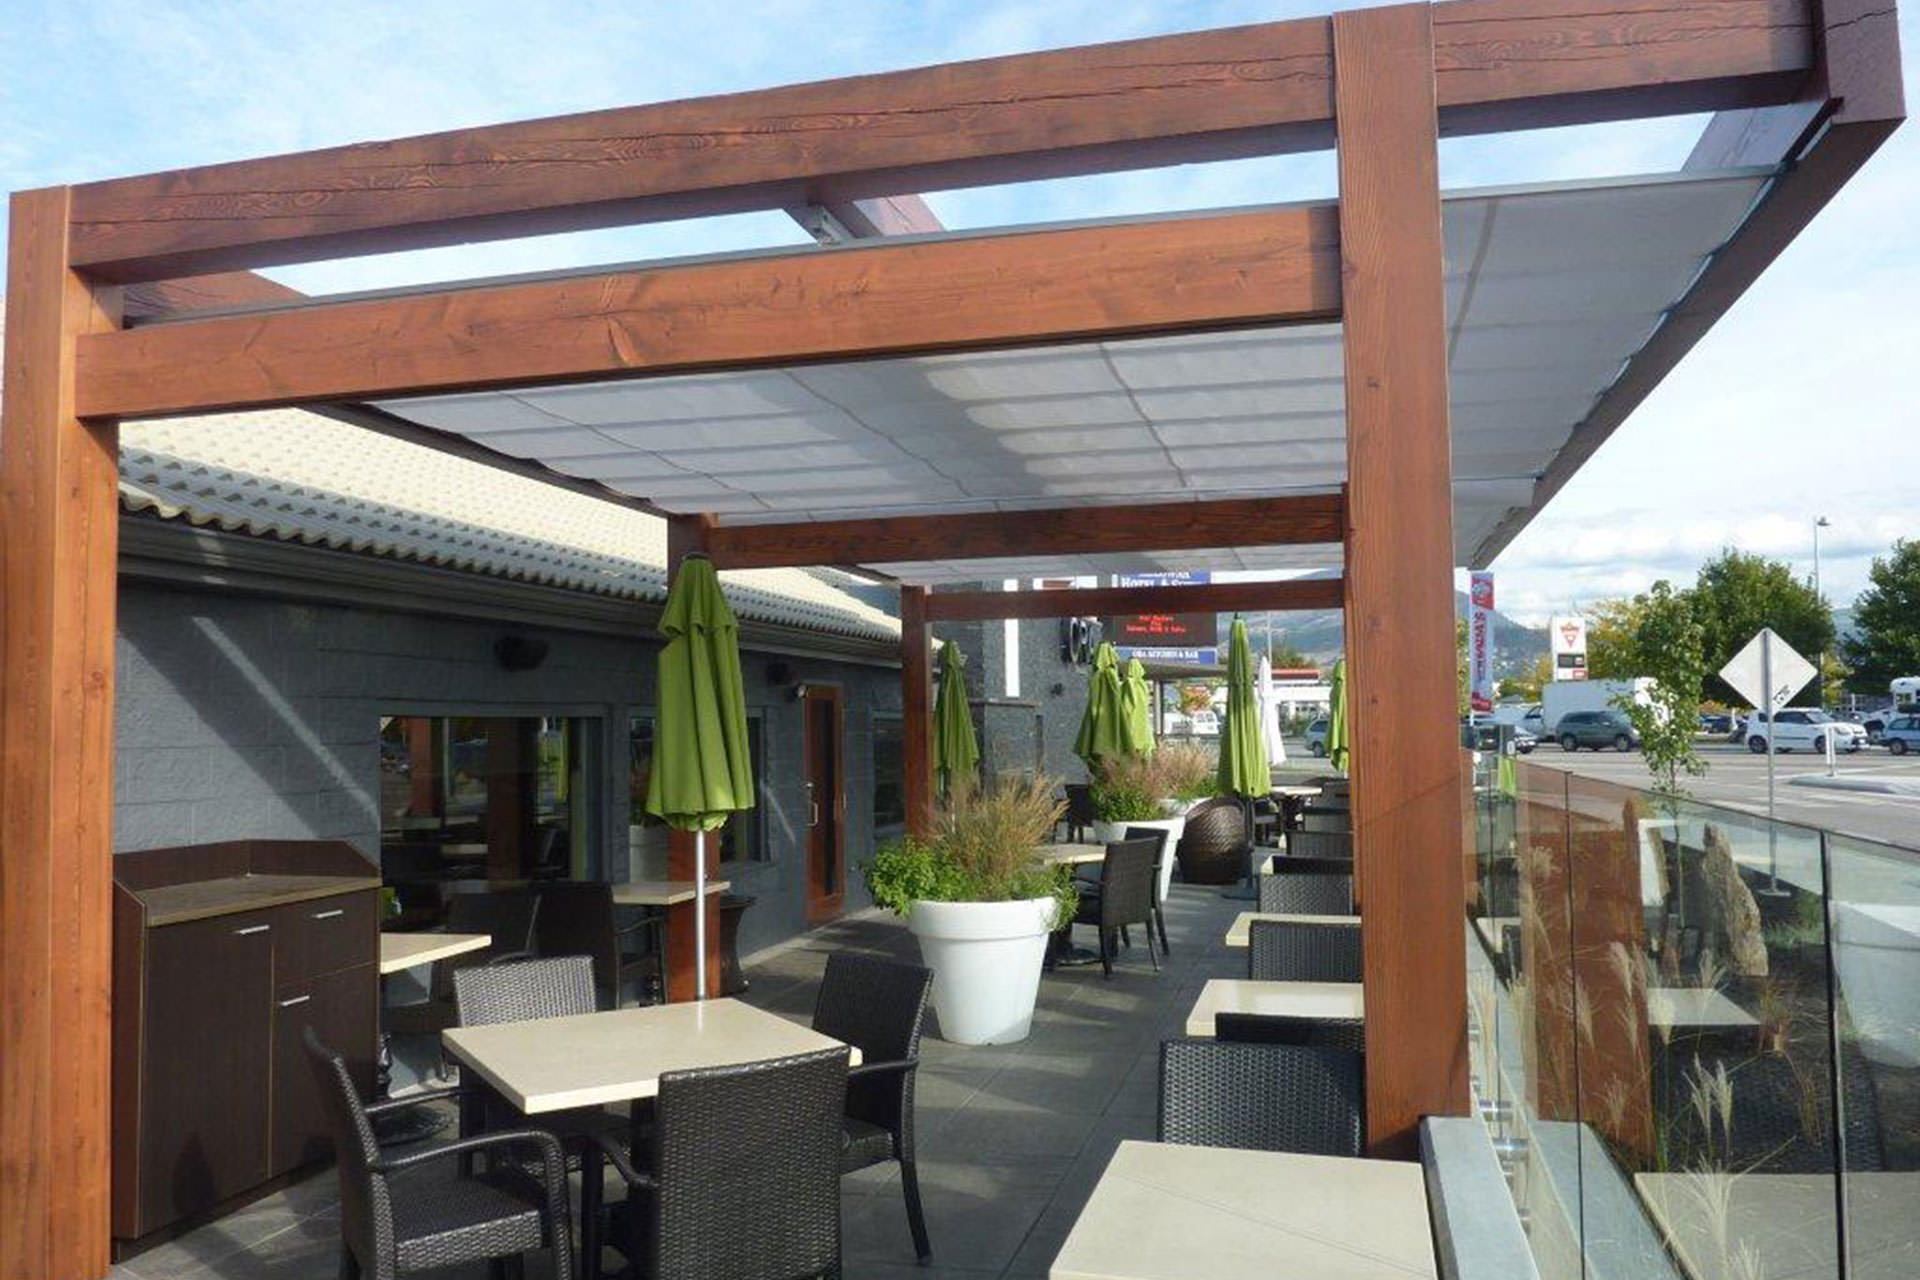 Cantilevered Canopies. Pergola Roof - ShadeFX - Cantilevered & Gimme Shelteru0027: The ShadeFX Retractable Canopy